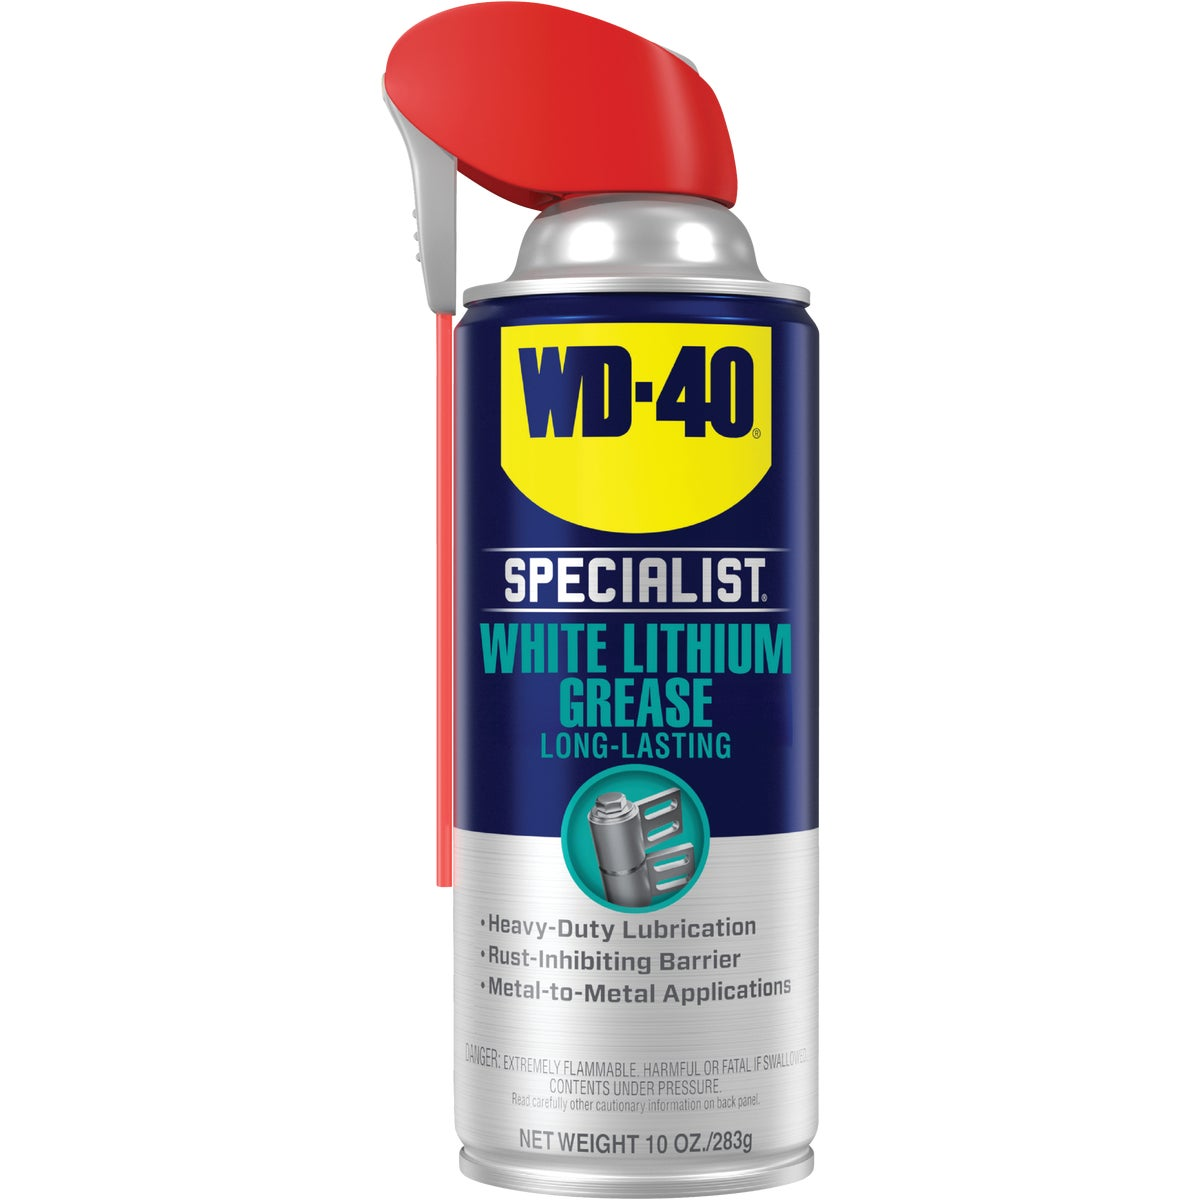 10OZ WHT LITHIUM GREASE - 300025 by W D 40 Company